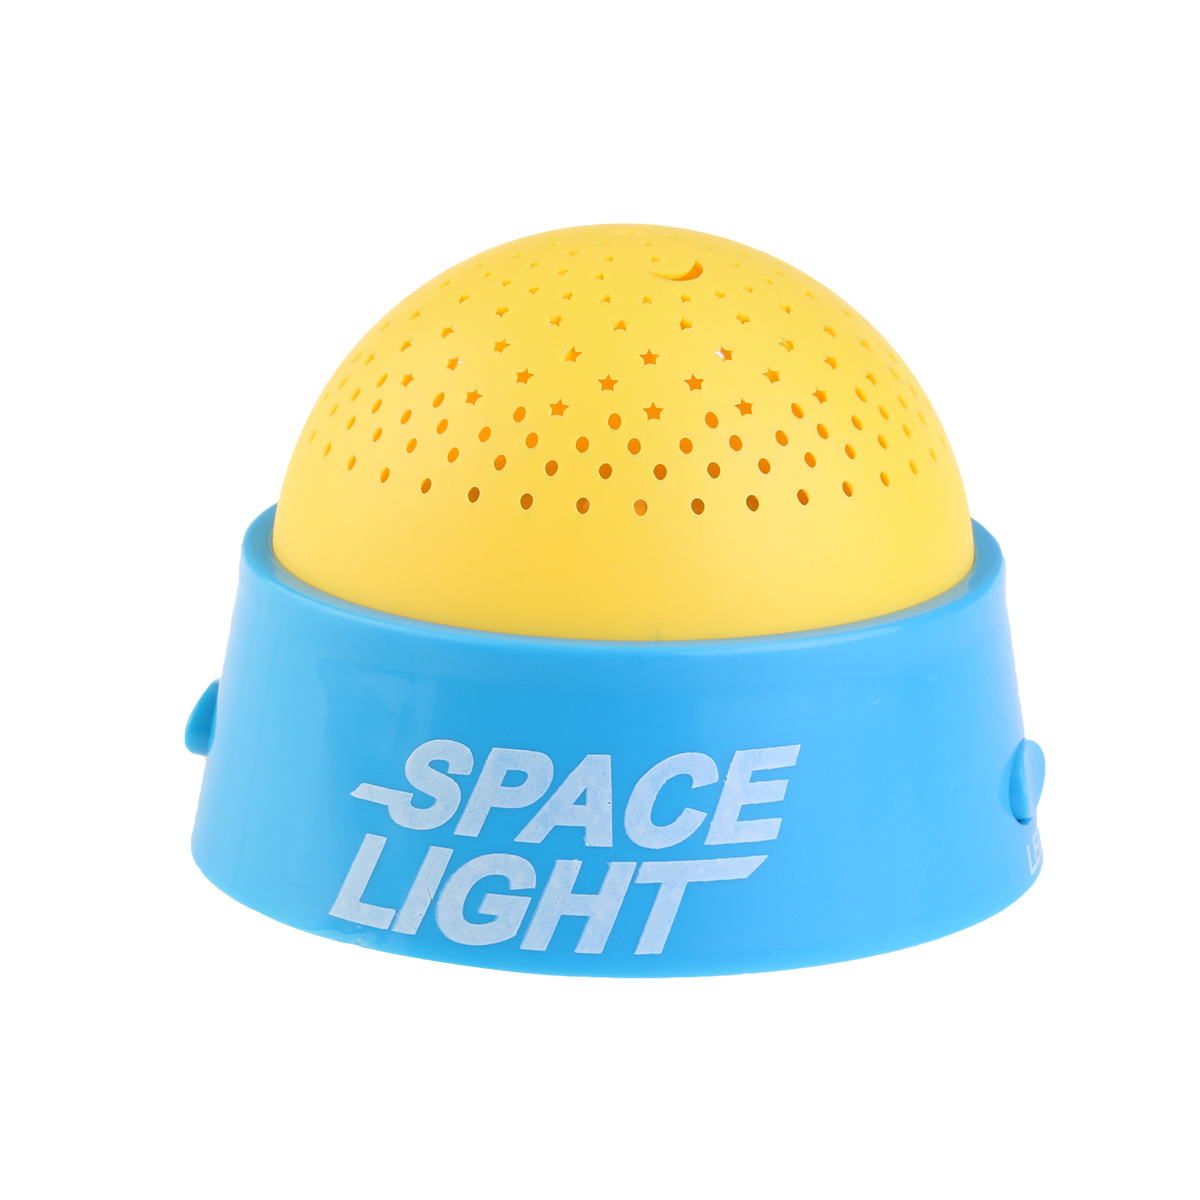 Buy led night lamp online india - Creative Starry Sky Projector Led Night Light Baby Kid Sleep Table Lamp Children S Nightlight With Music